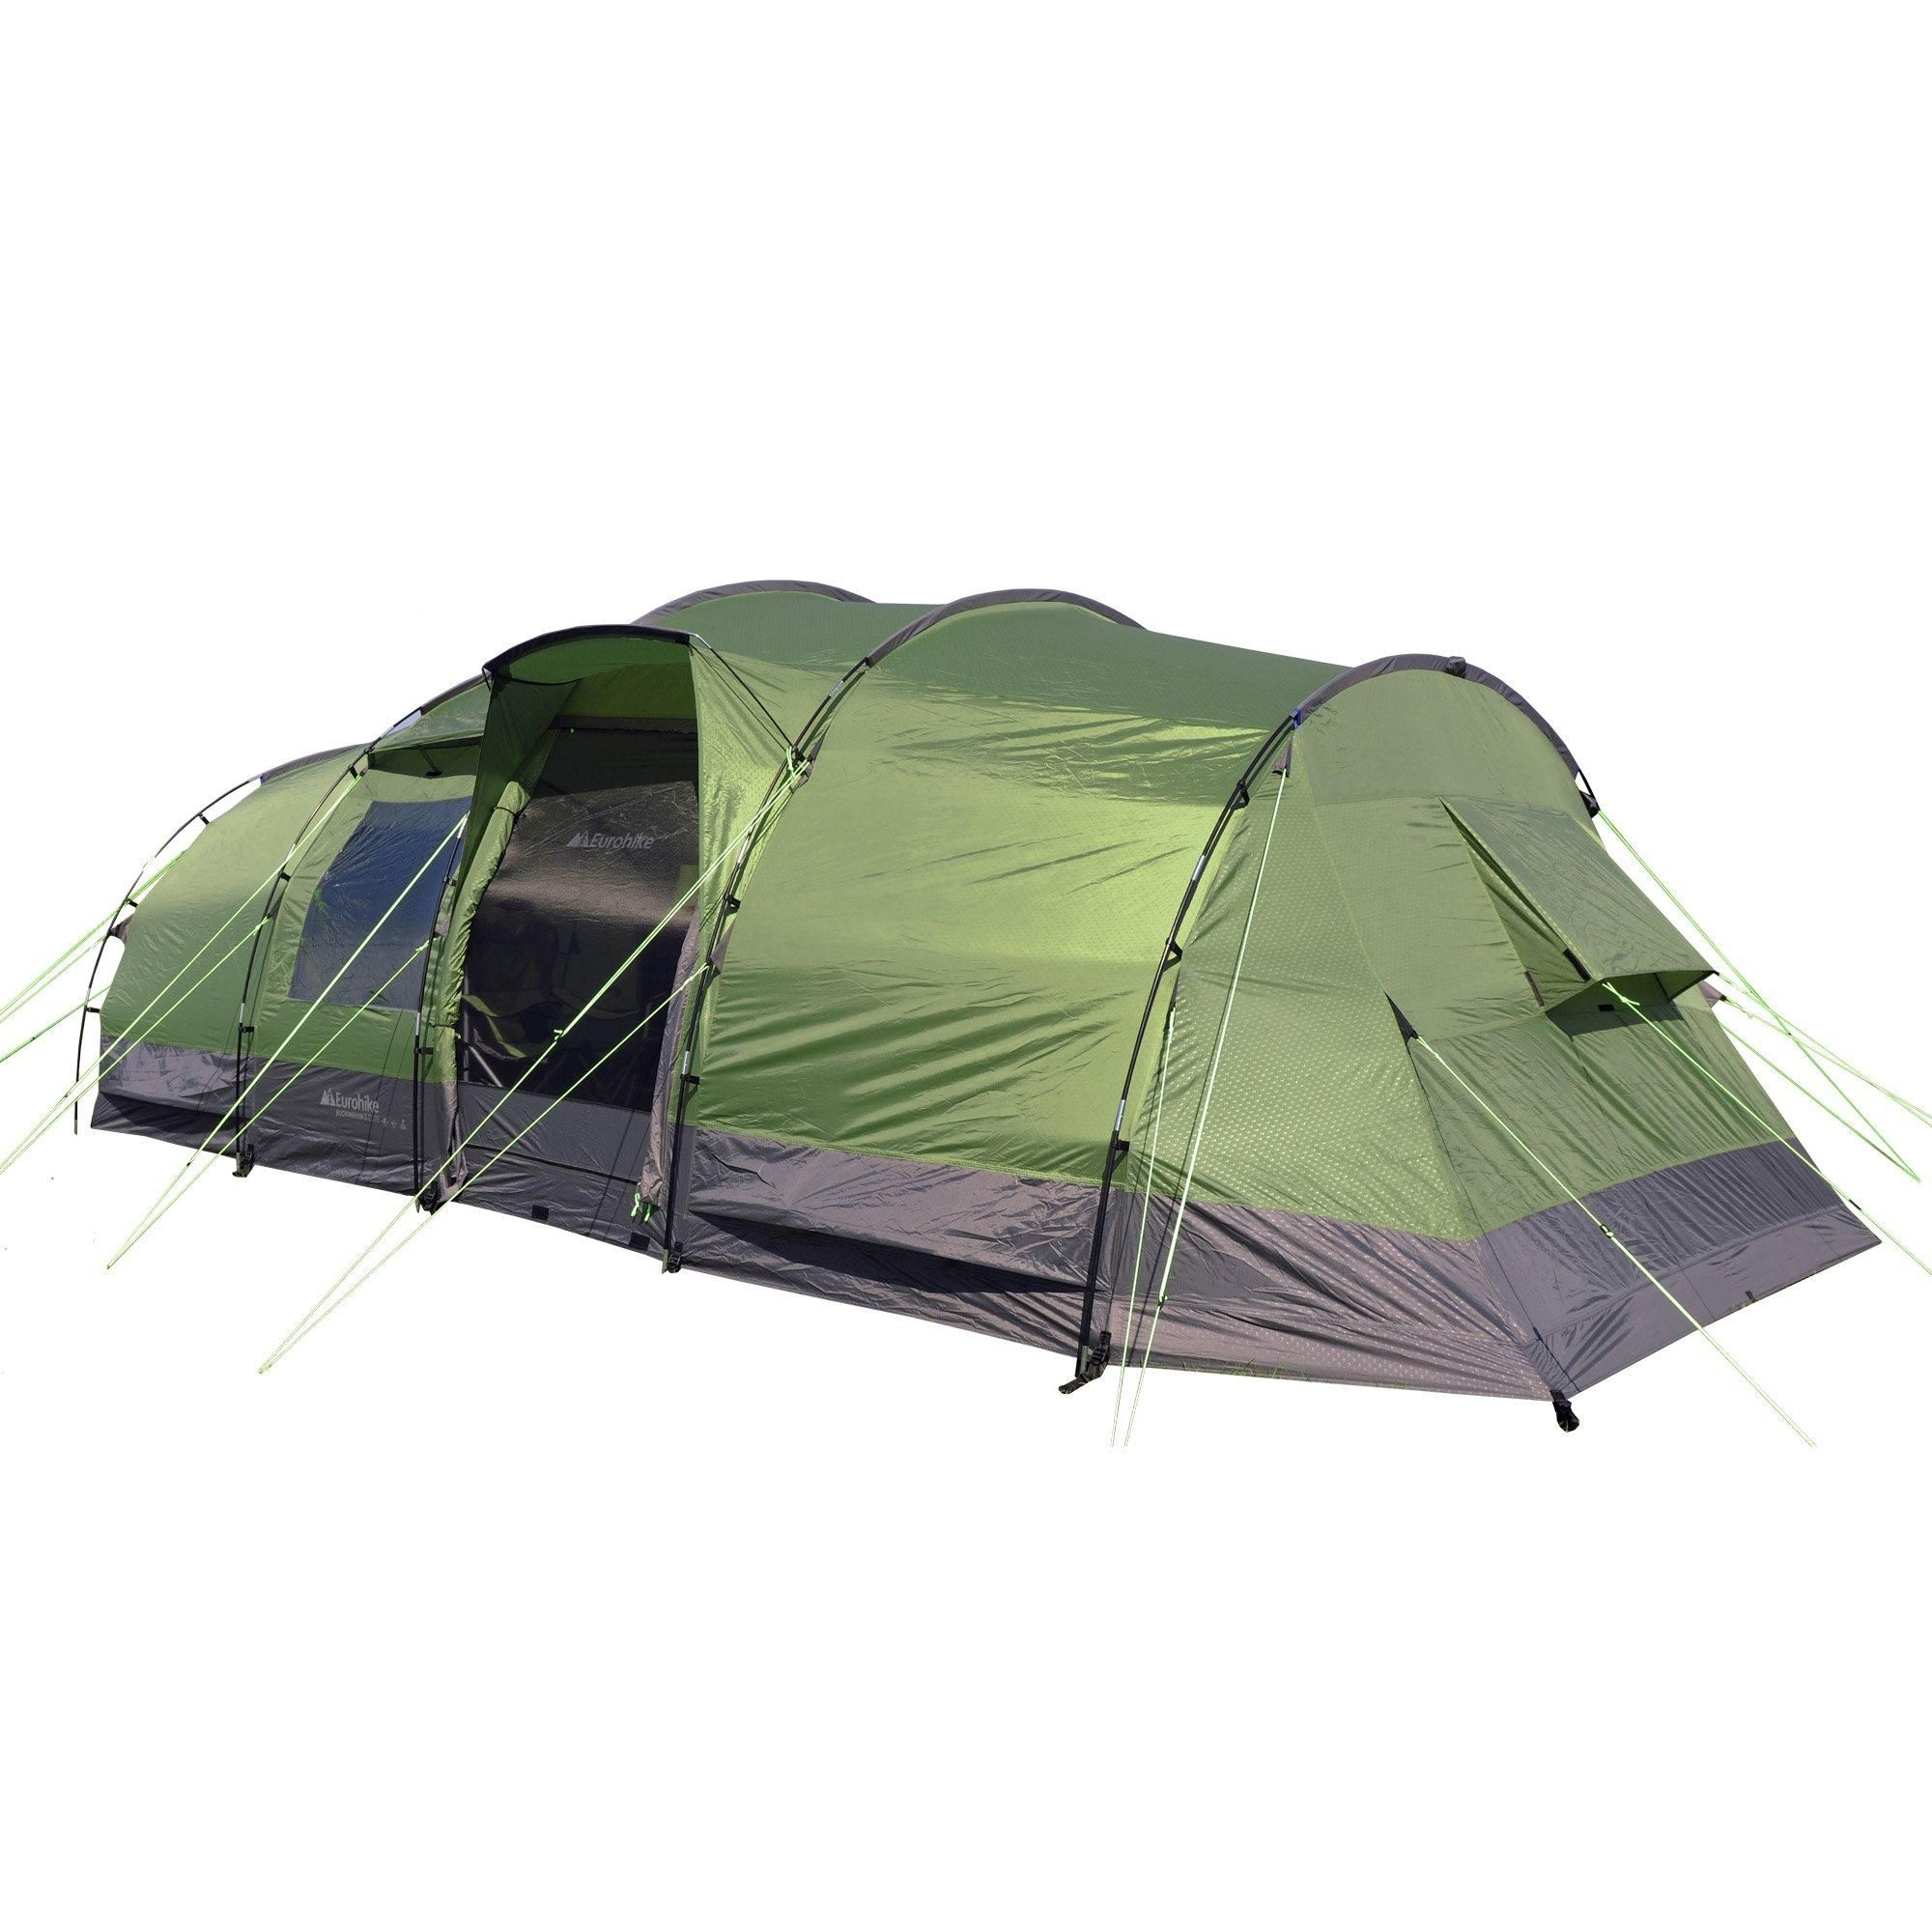 Eurohike Buckingham Elite 8 Man Family Tent - Blacks  sc 1 st  Pinterest : alpine 8 man tent - memphite.com